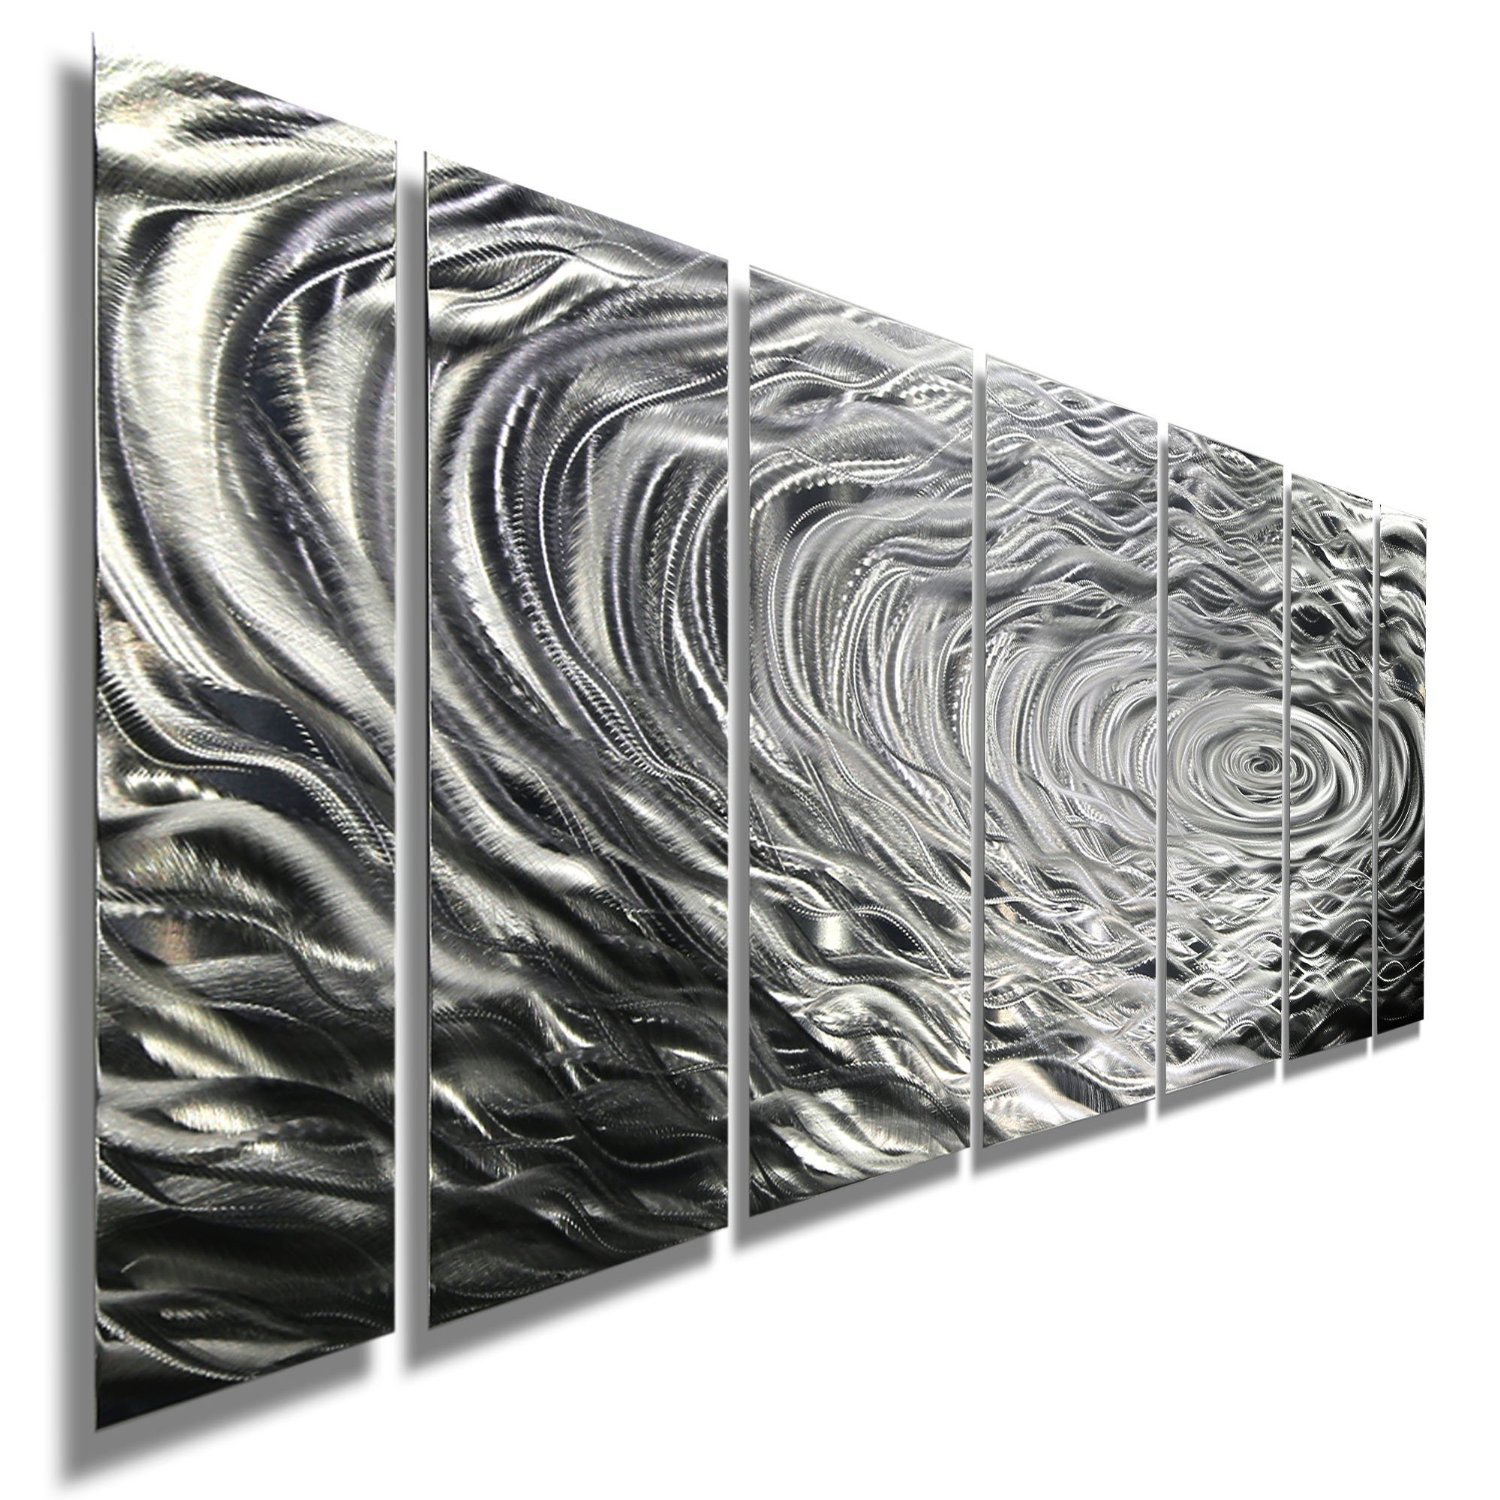 Get quotations · large silver water inspired metal wall art contemporary metal wall art decor sculpture ripple